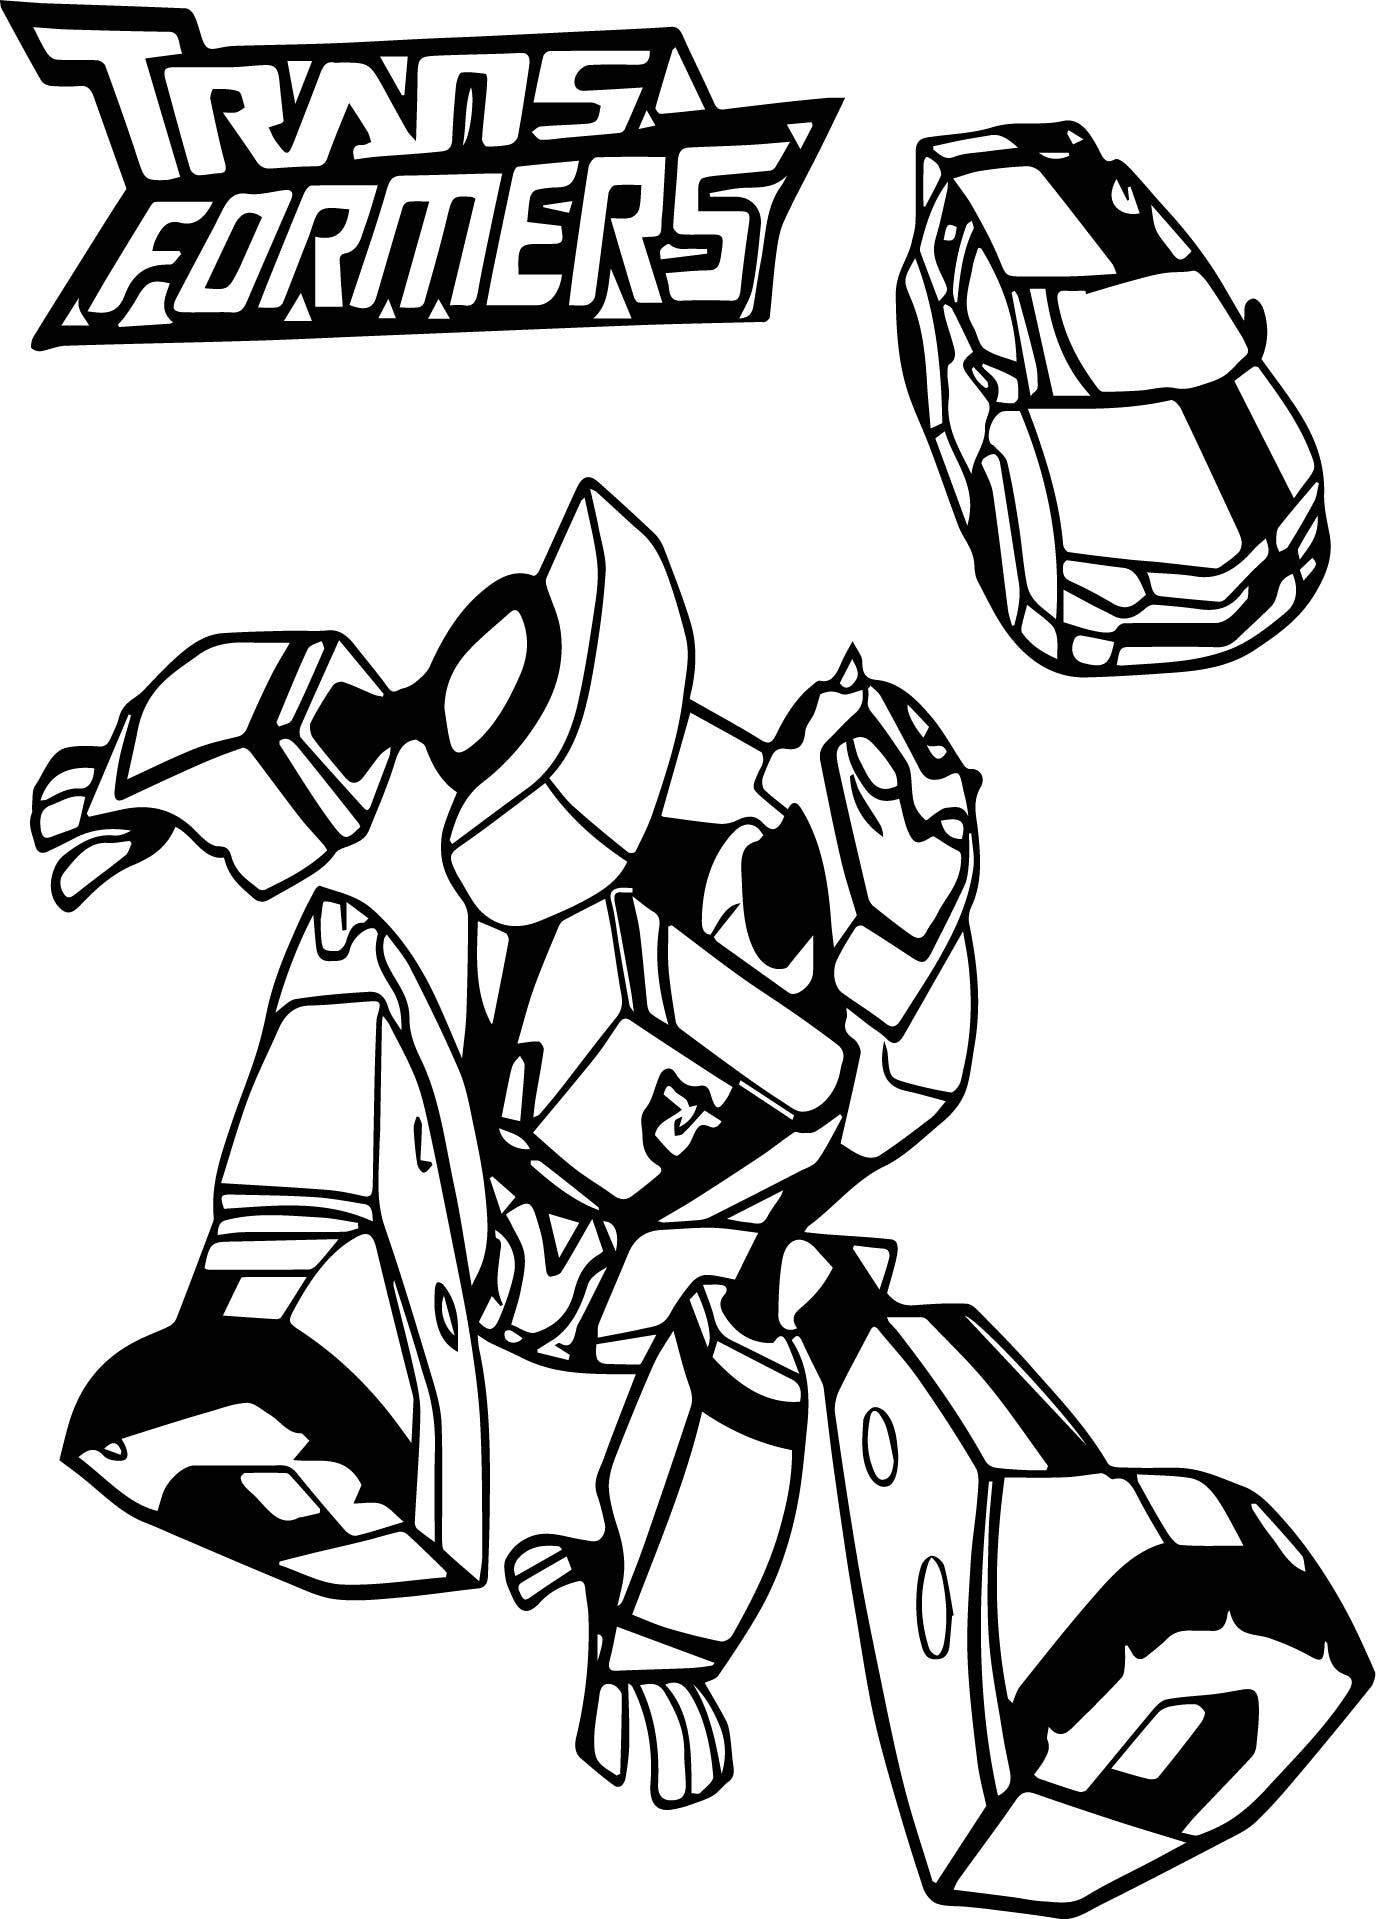 bumblebee transformer coloring pictures bumblebee transformer coloring pages printable clipart best transformer bumblebee pictures coloring